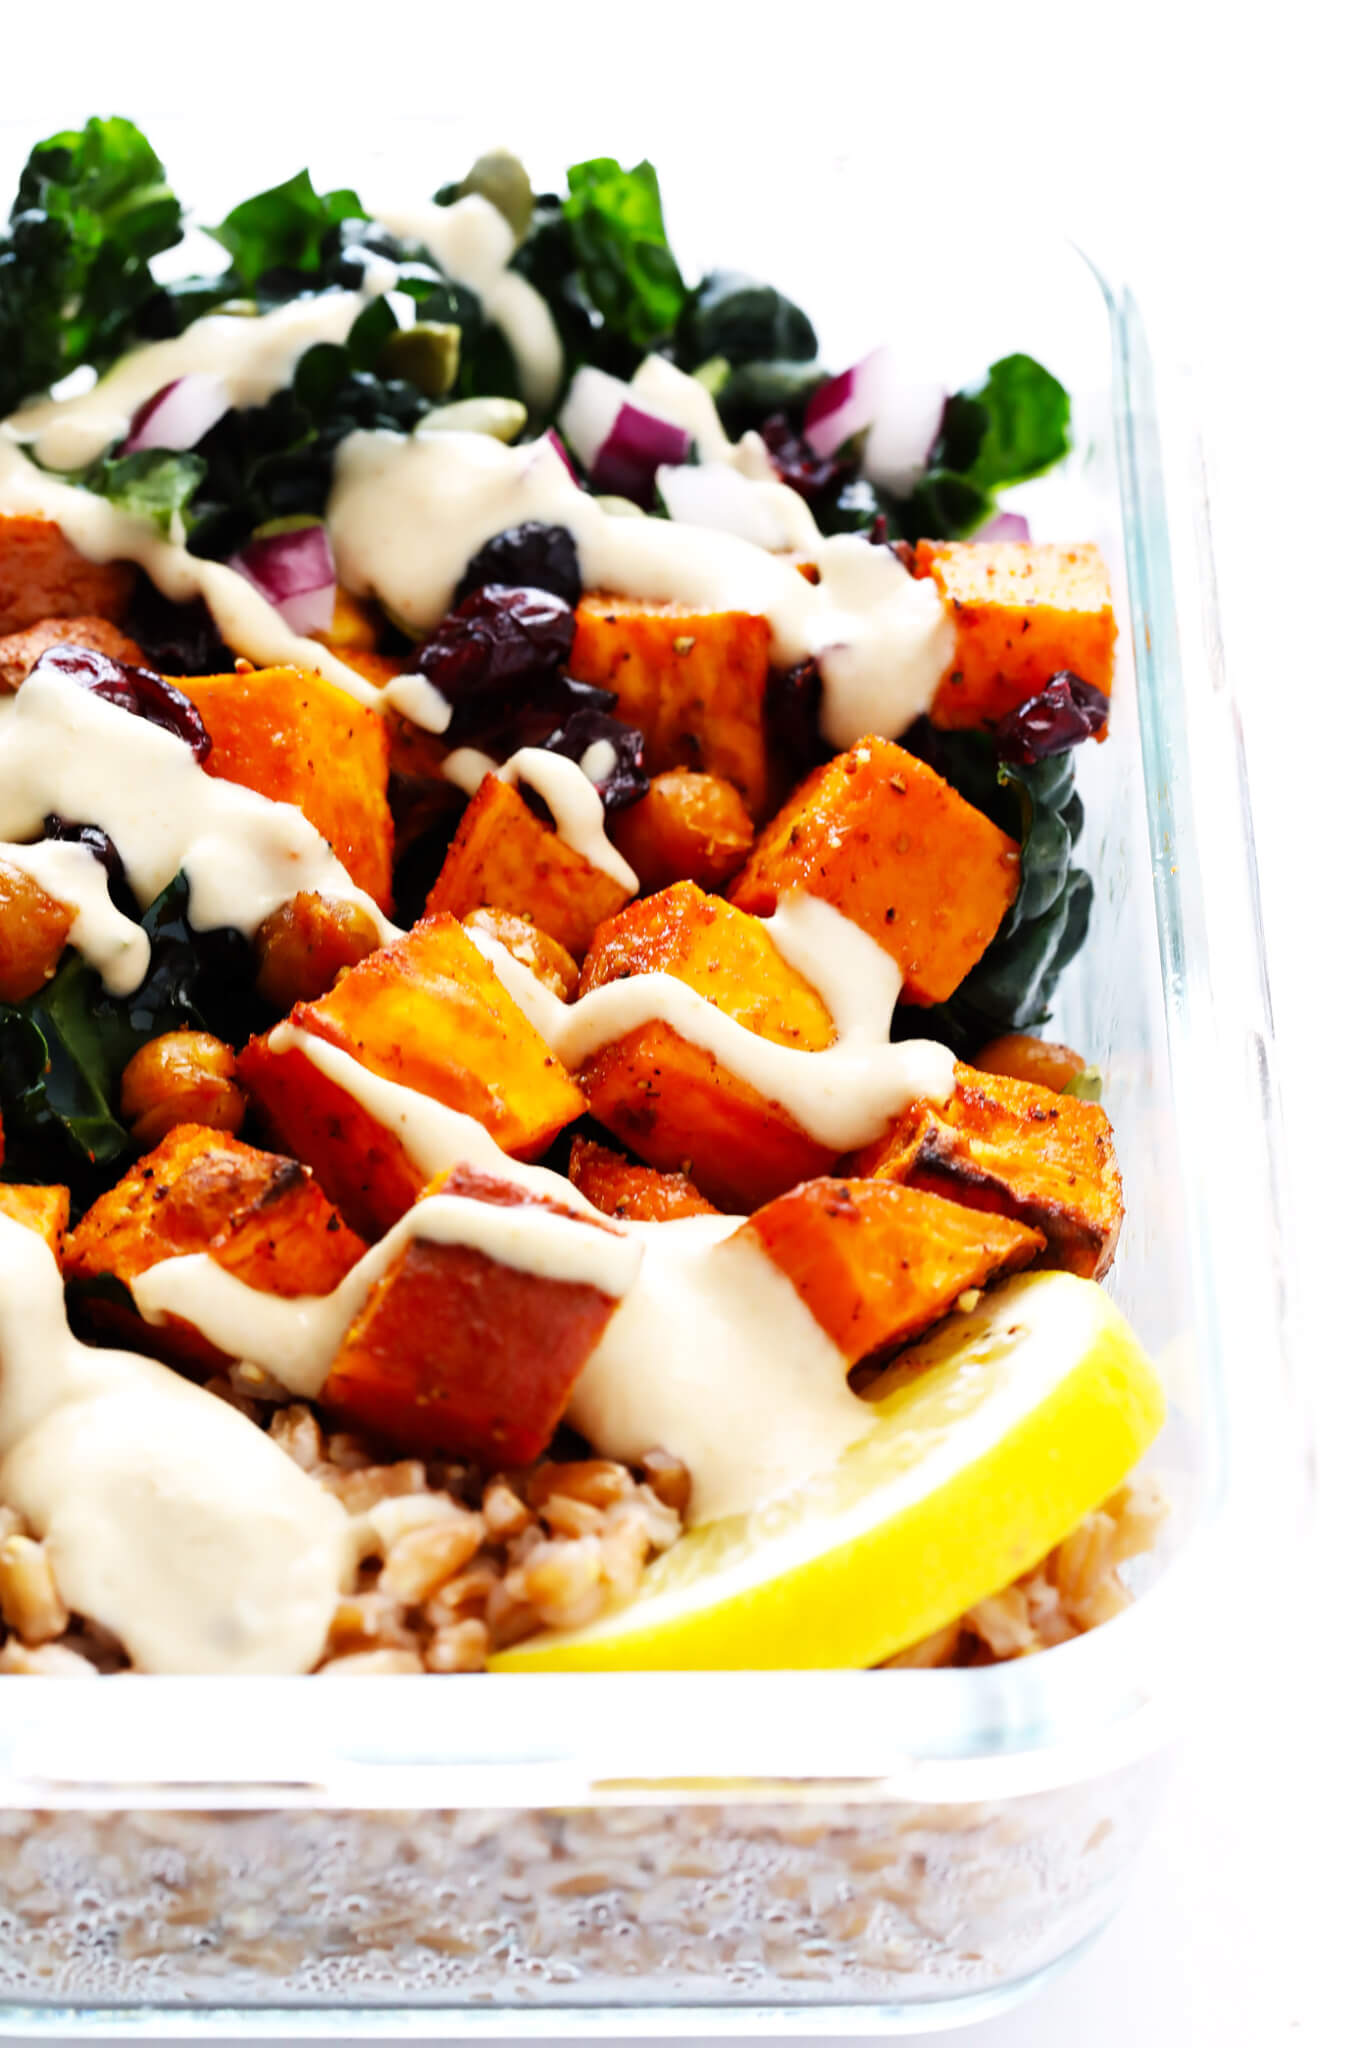 Roasted sweet potato and kale salad